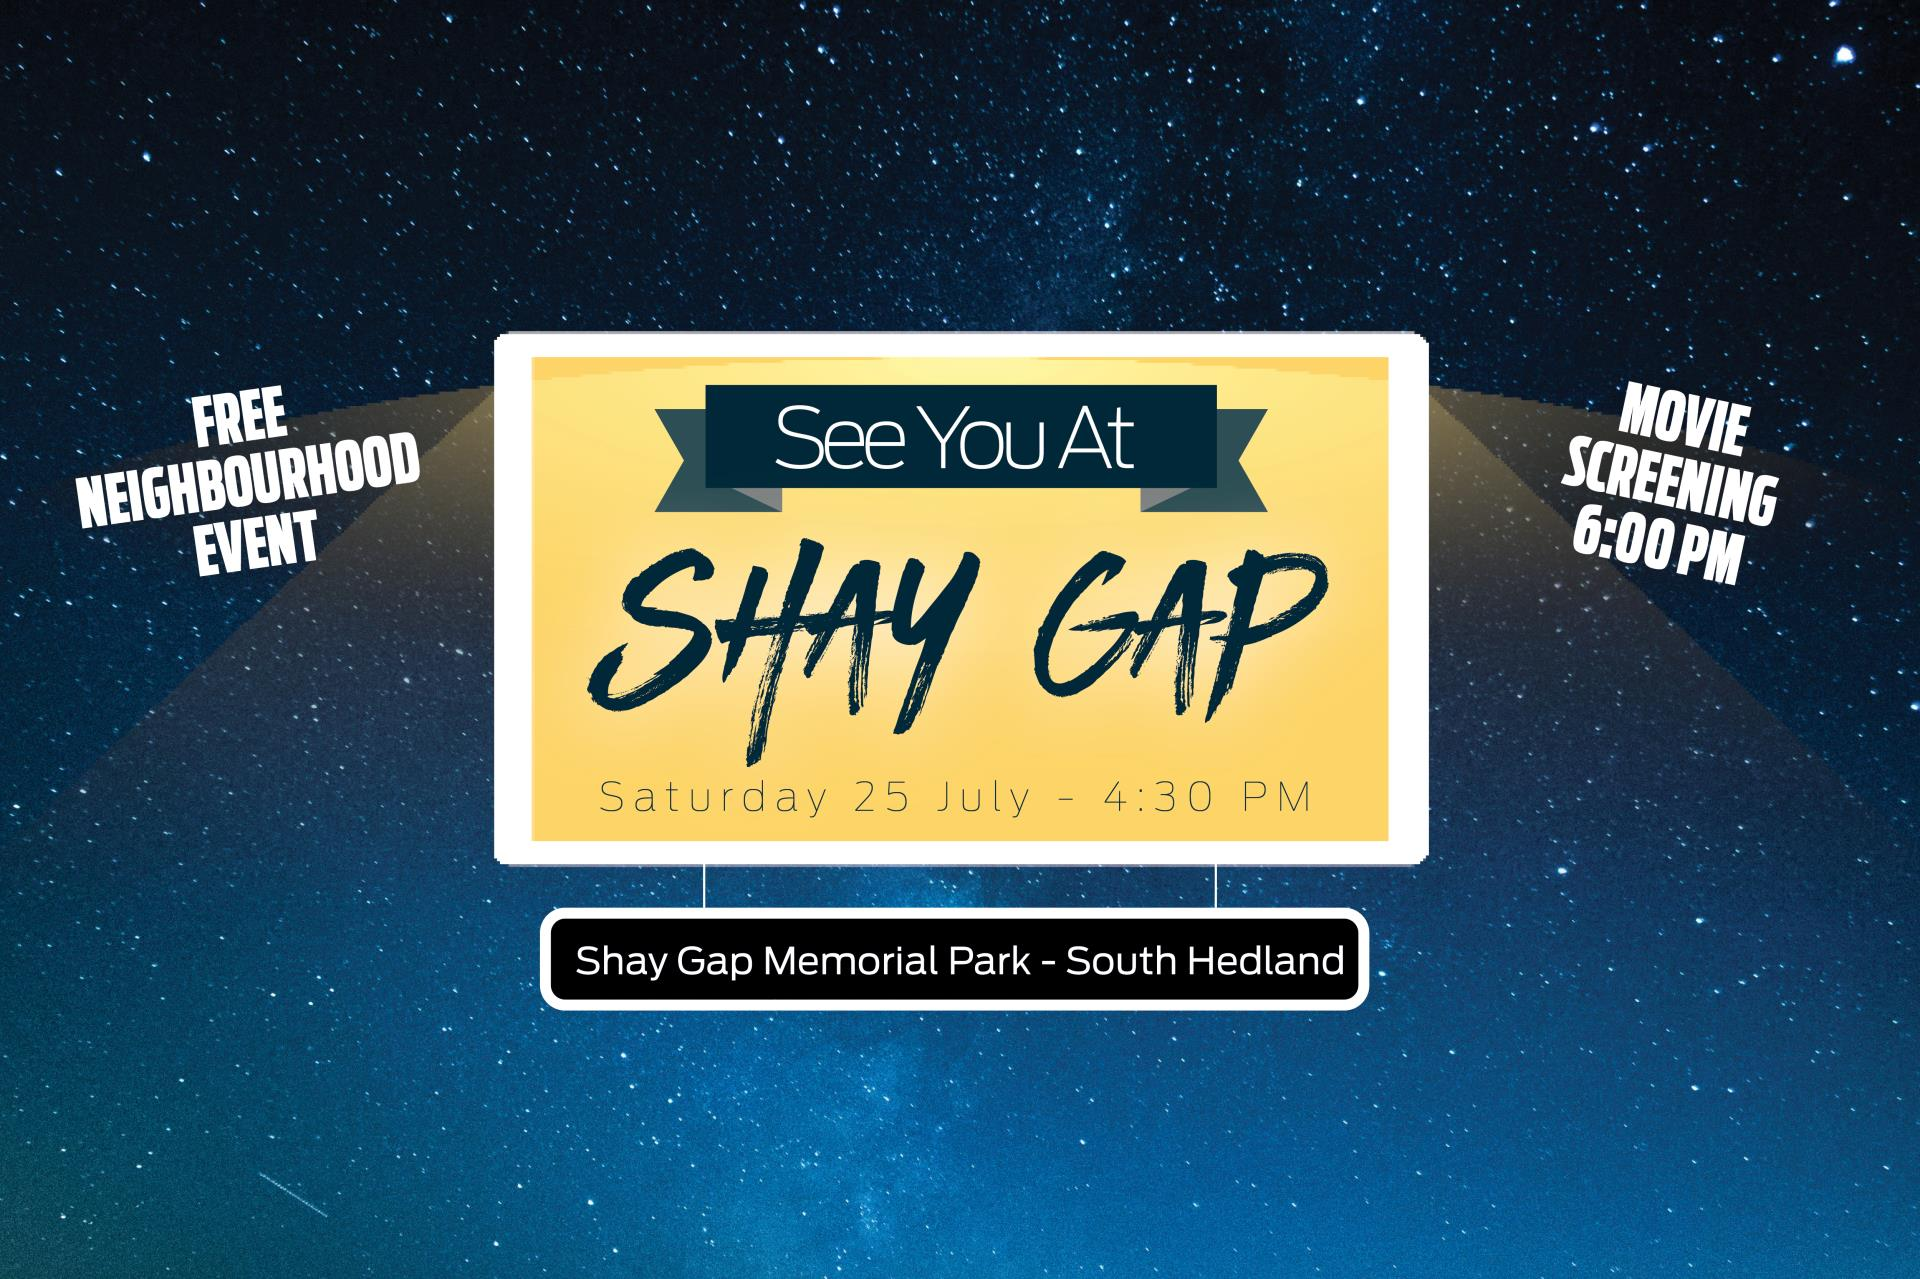 See you at the Shay Gap Memorial Park Event